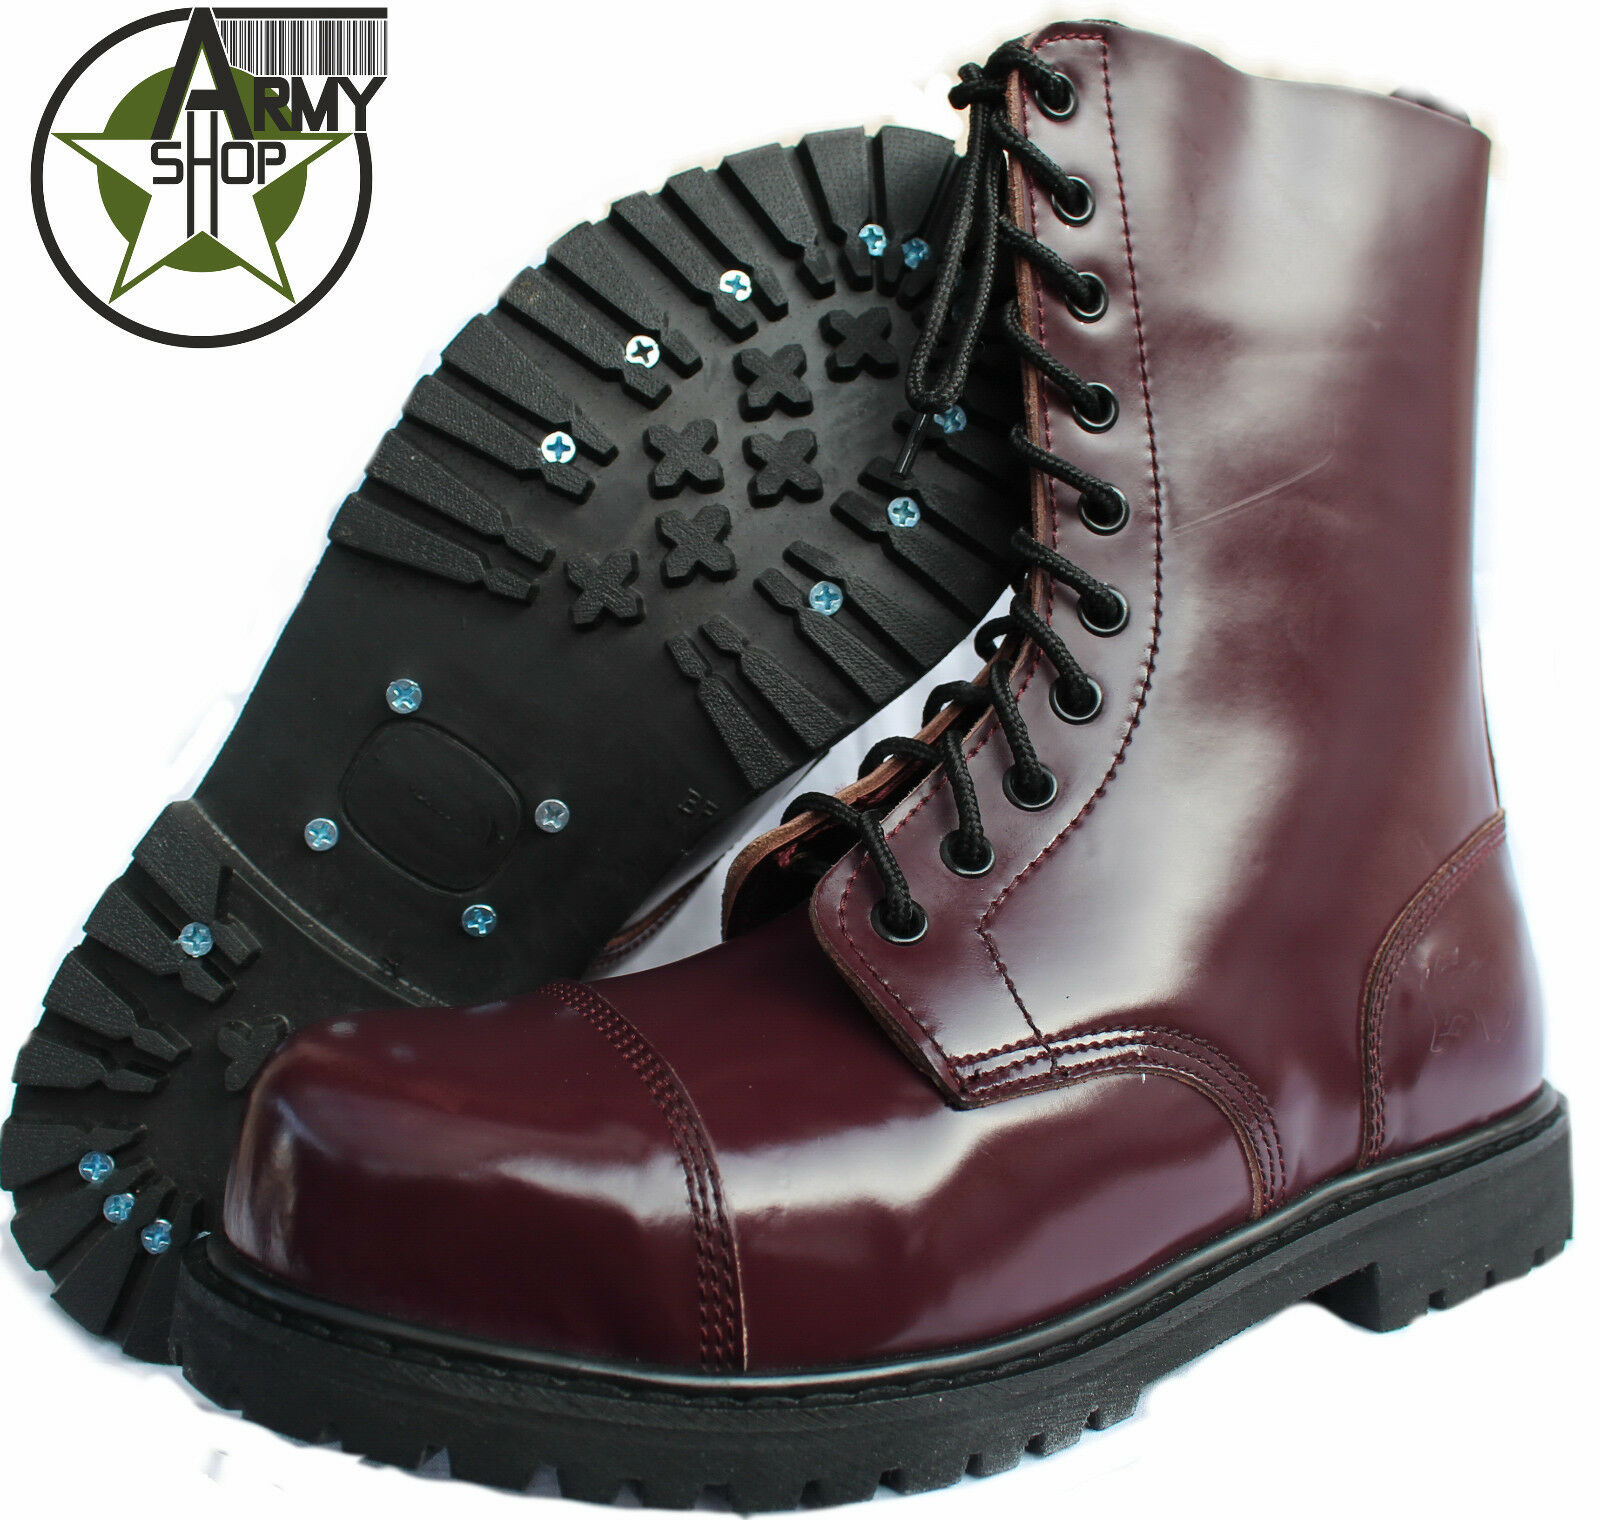 10 Loch Ranger Boots Kampfstiefel Springer Stiefel Rangers Bordeaux red Weinred